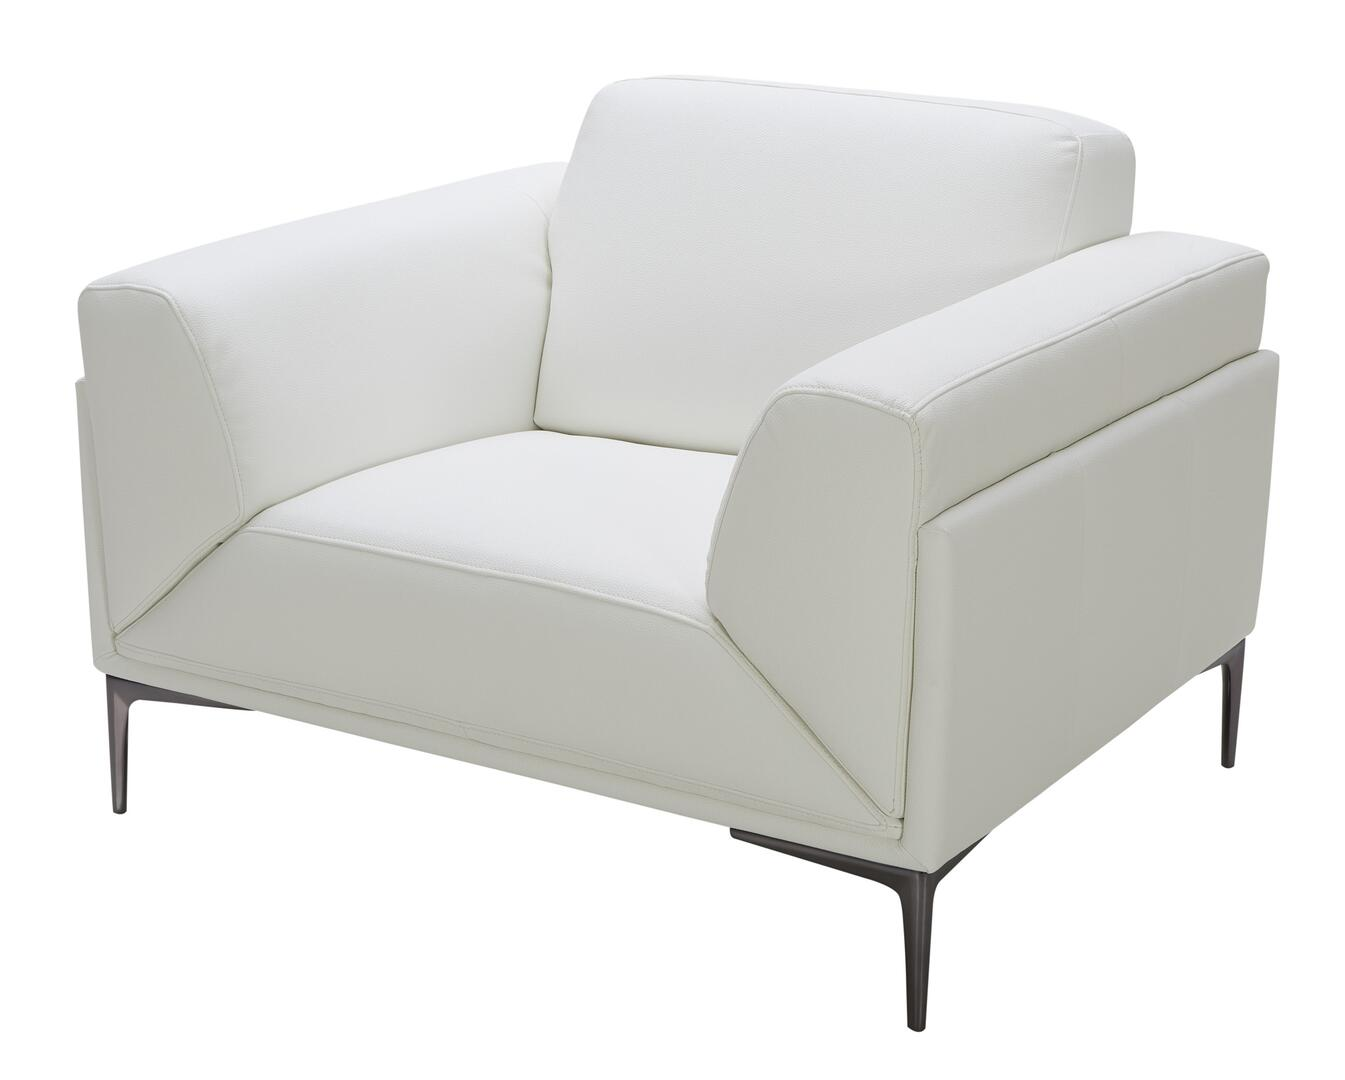 J And M Furniture 18248c Davis Series Leather Armchair With Wood Frame In White Appliances